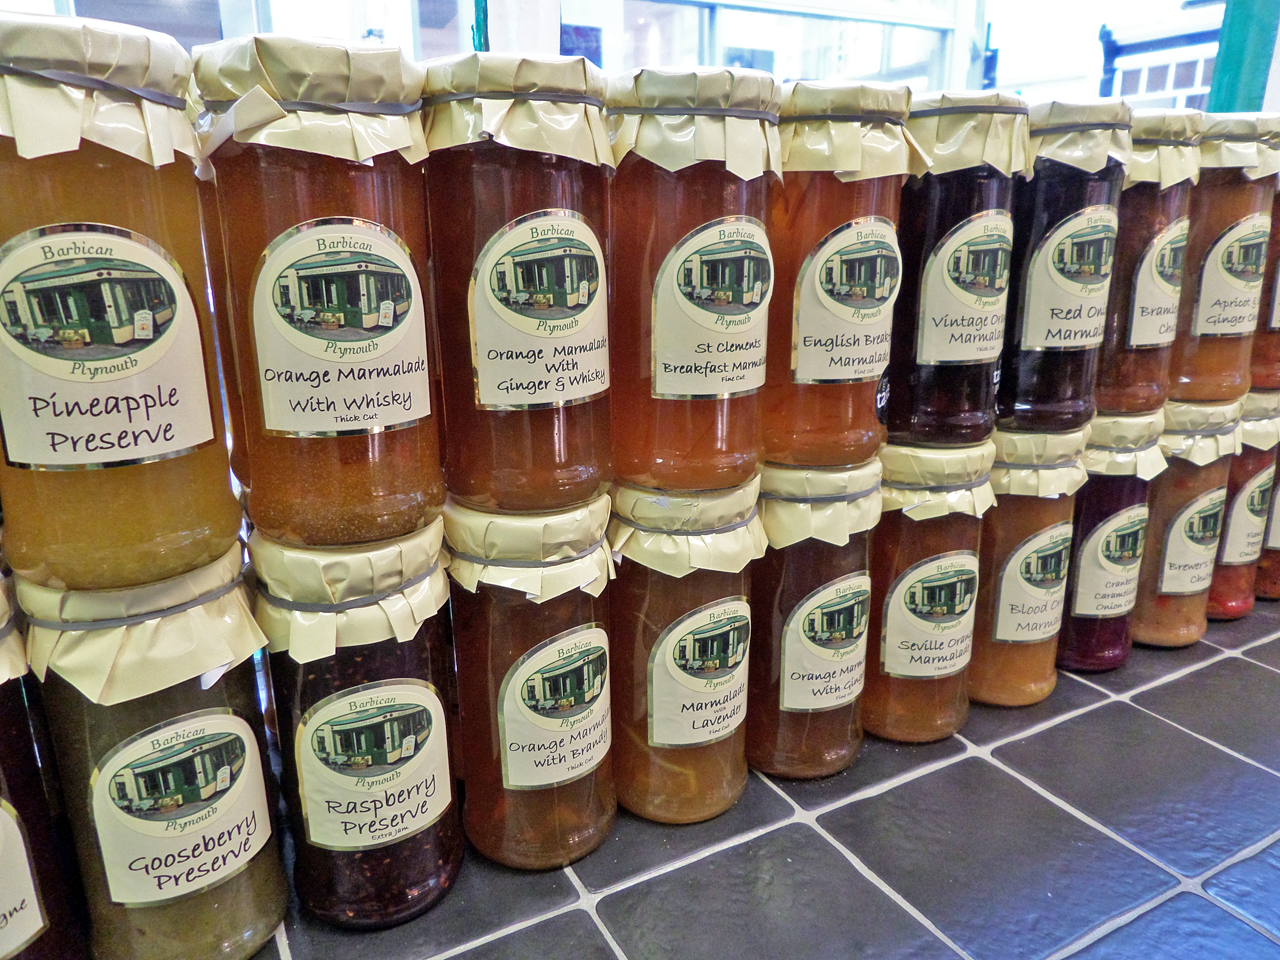 Jars Chutney Spreads